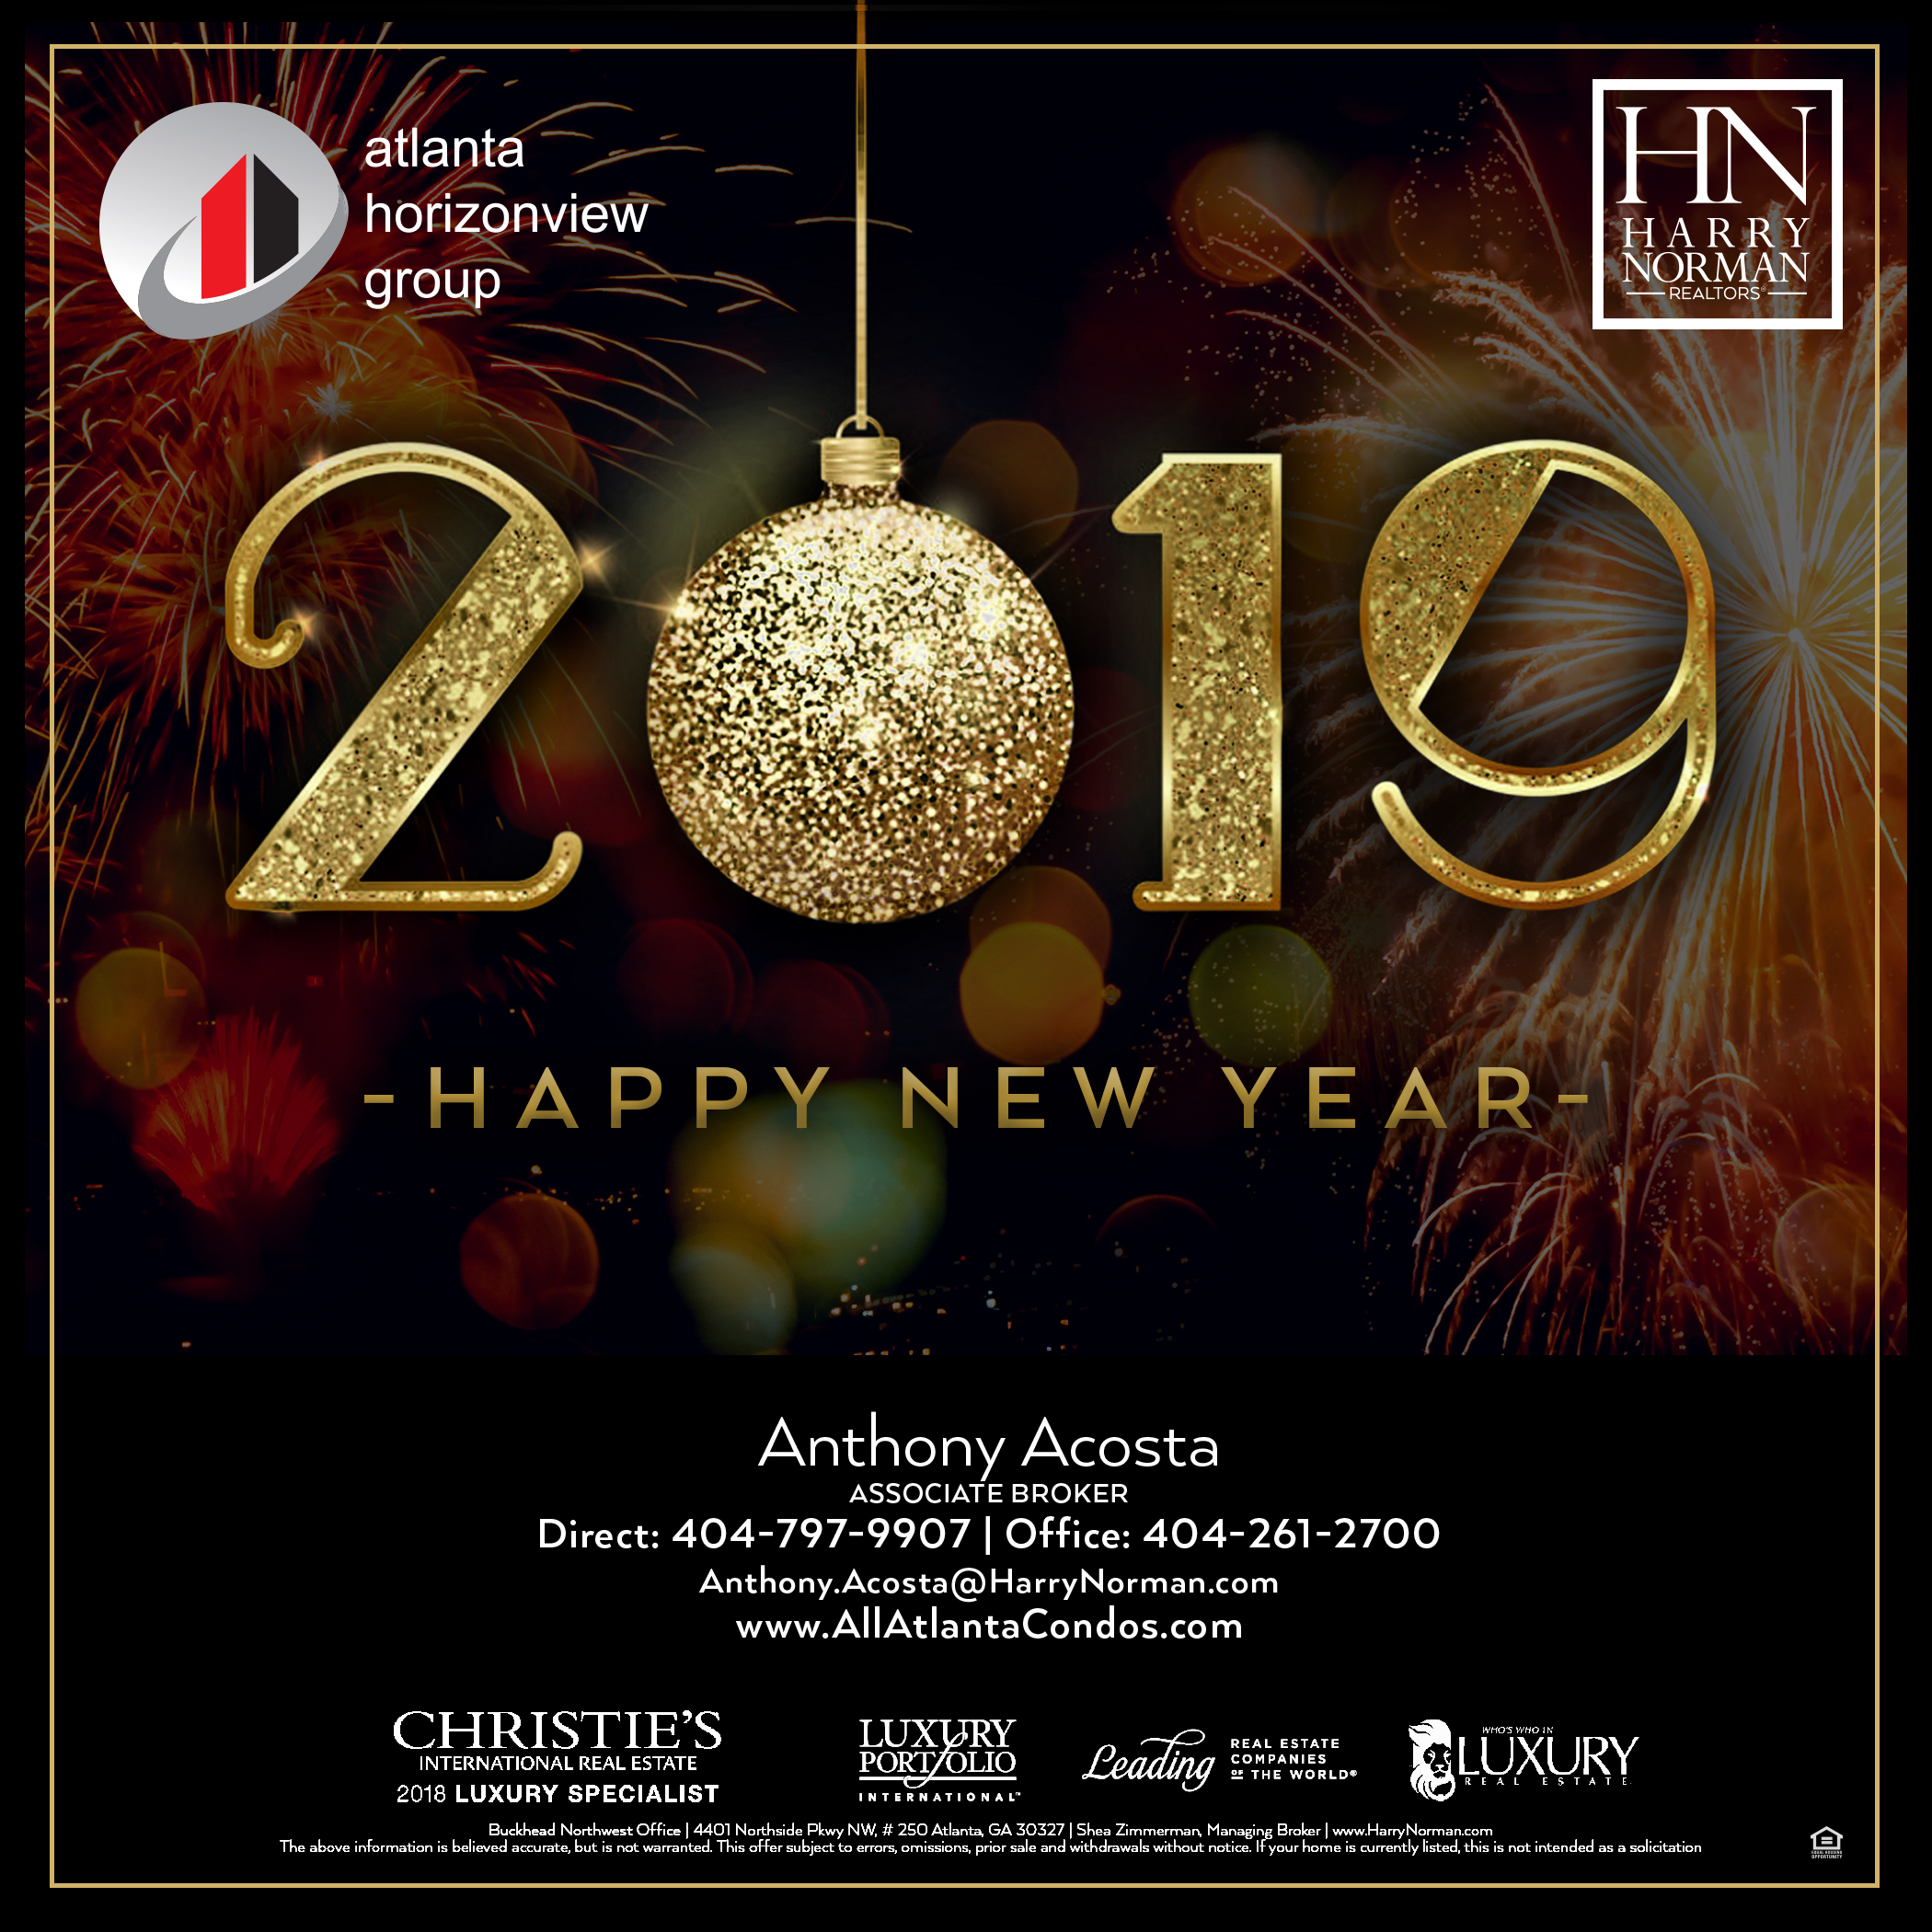 Happy New Year 2019 Wishing You All A Happy And P